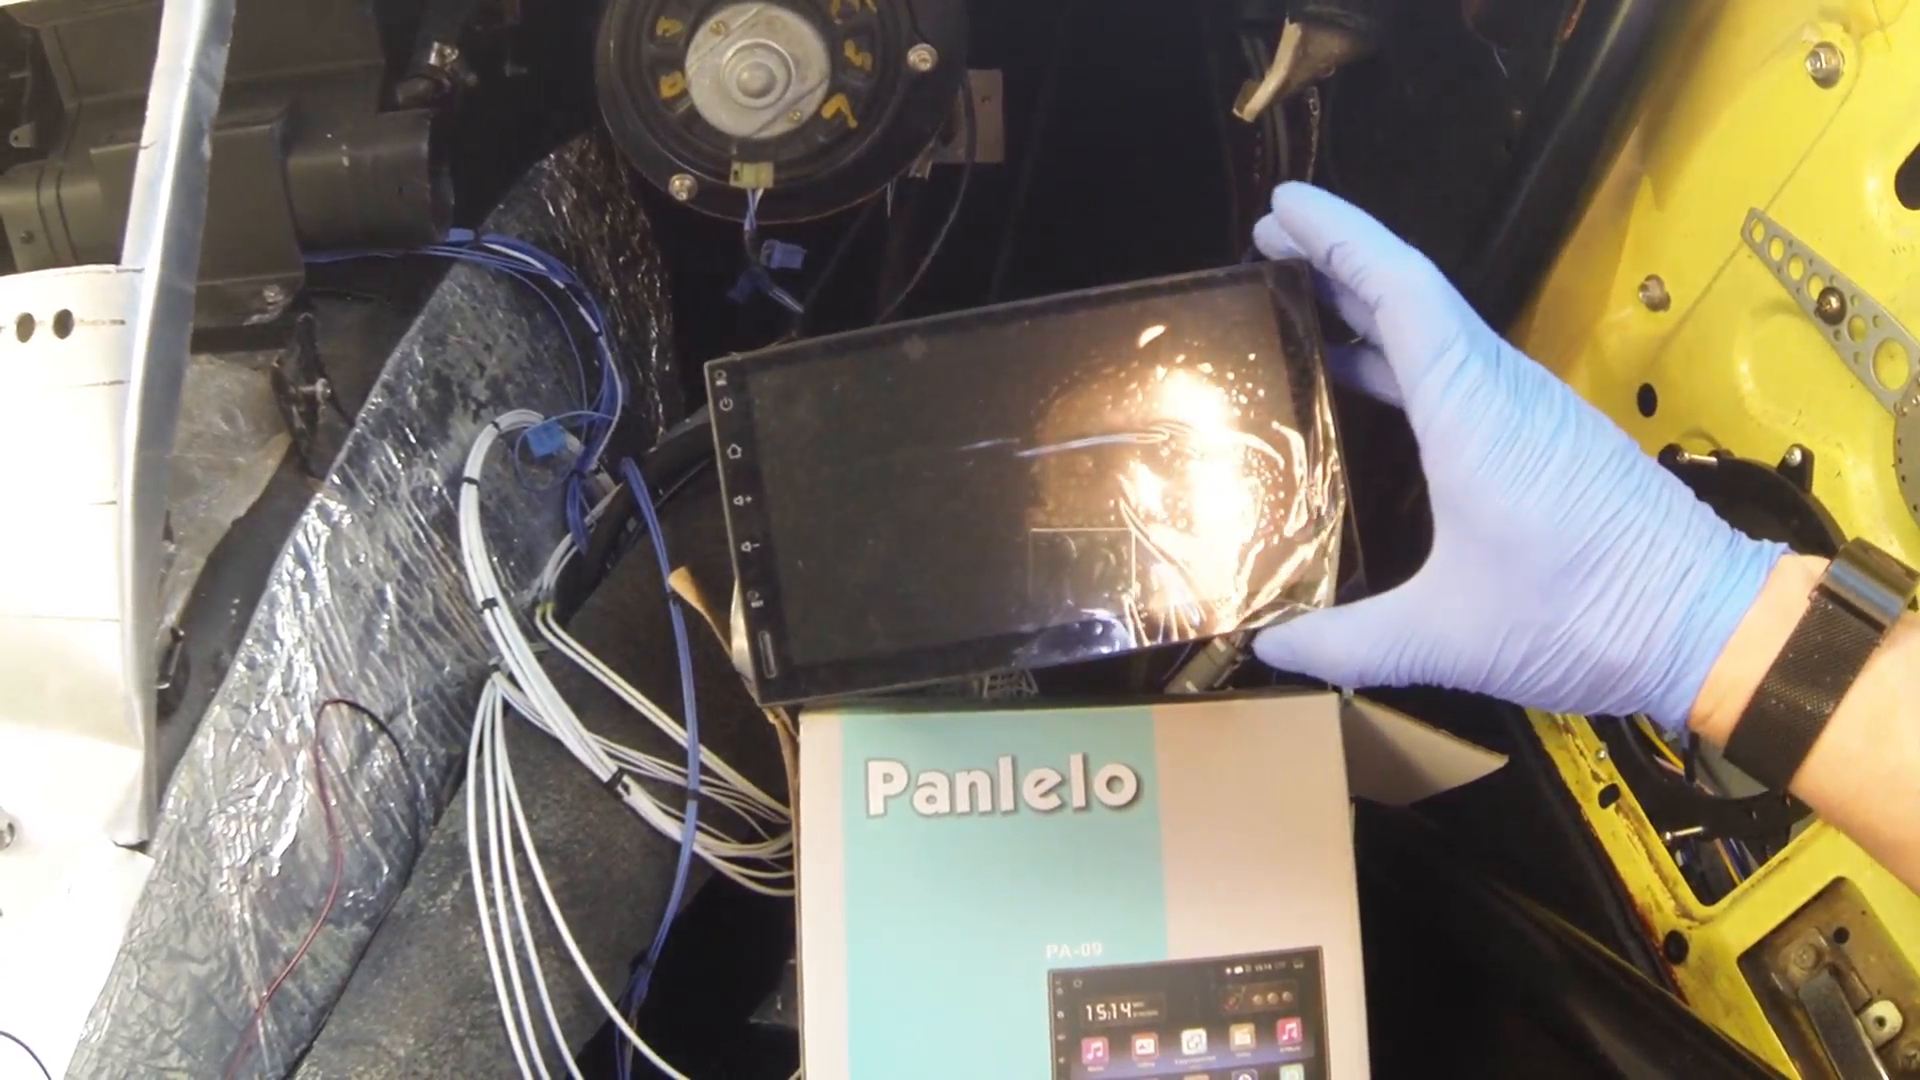 panlelo pa 09yz32 review with installation instruction and wiring honda xr 125 wiring diagram panlelo pa 09yz32 review with installation instruction and wiring diagram